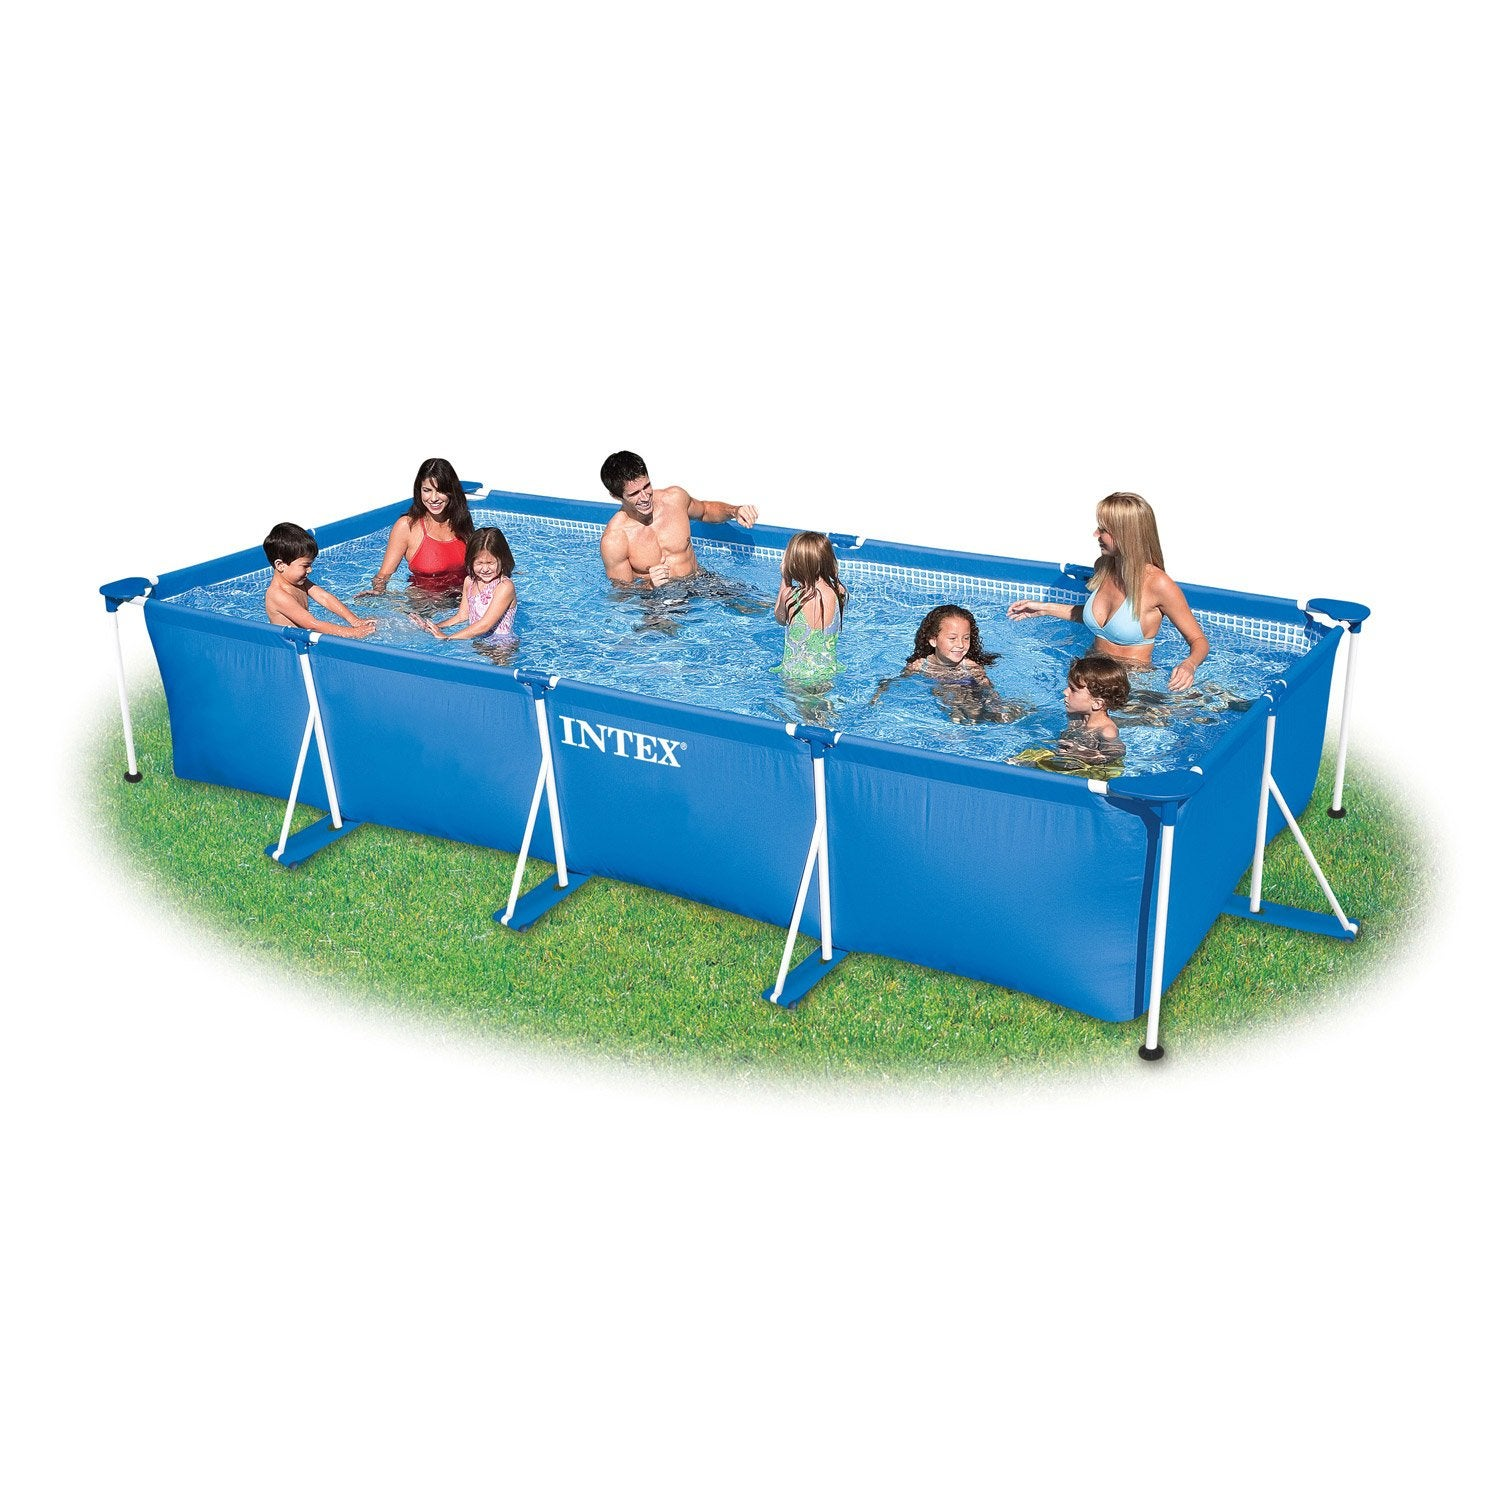 Piscine hors sol autoportante tubulaire intex l x l for Piscine demontable intex